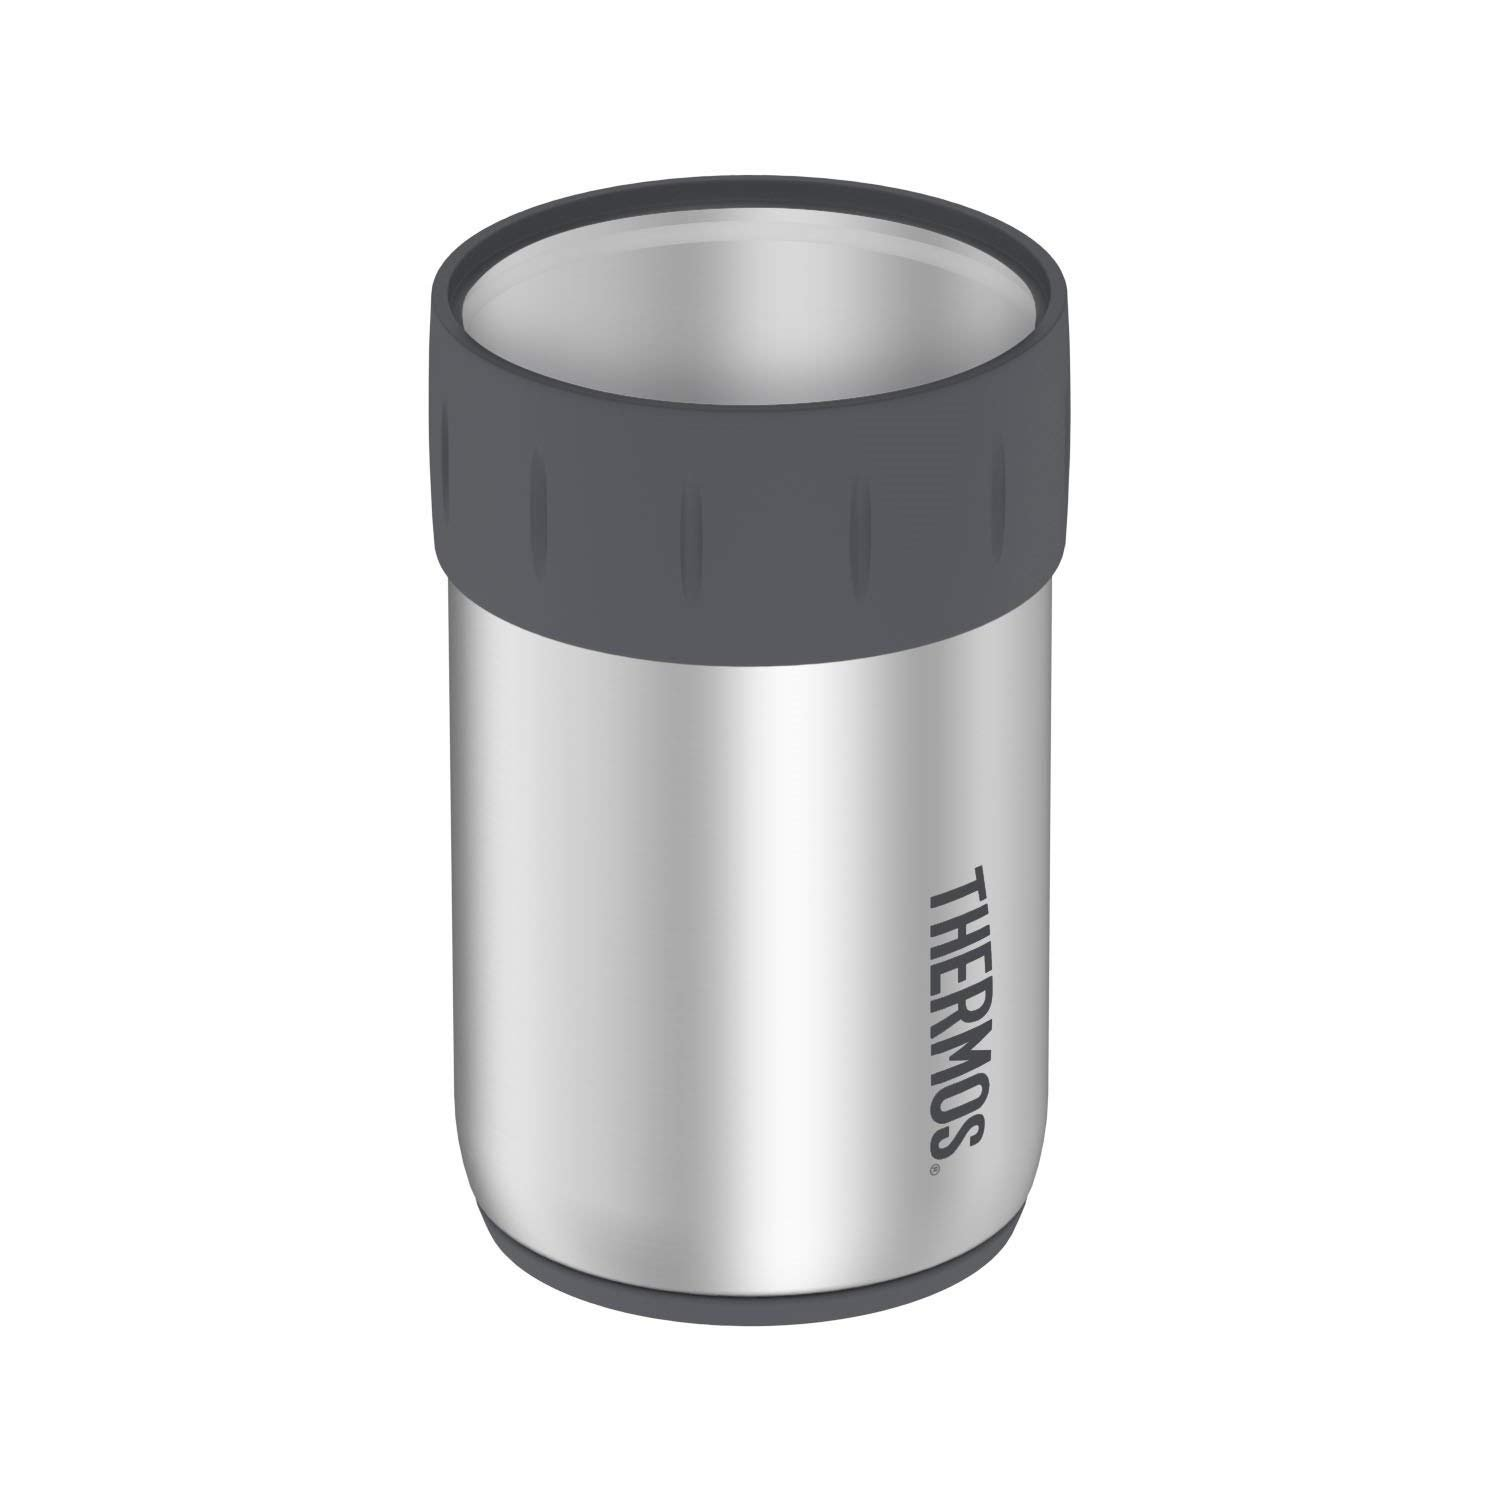 12-Ounce Stainless Steel Beverage Can Insulator